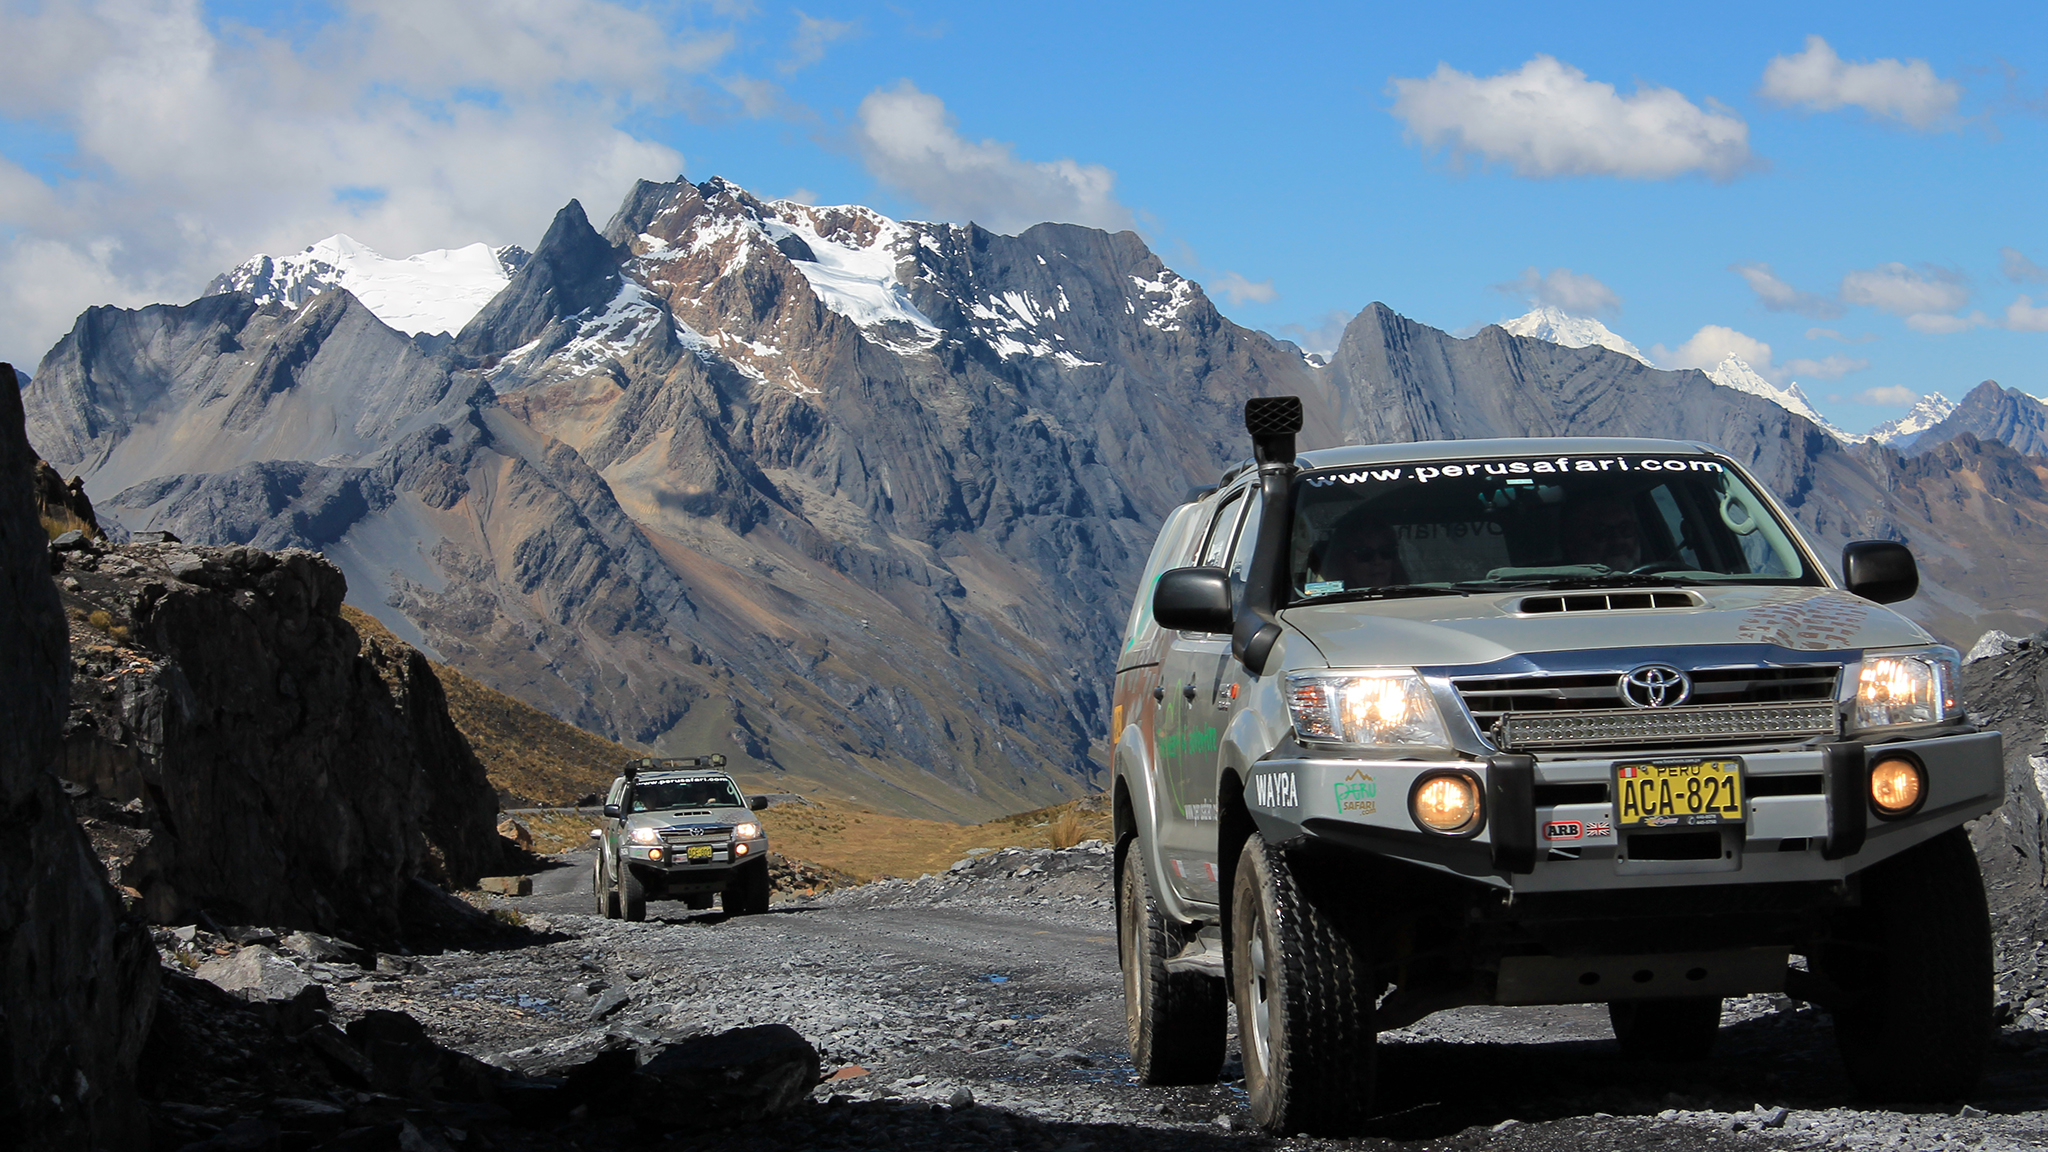 A 'Top Gear'-style road trip through Peru | Financial Times